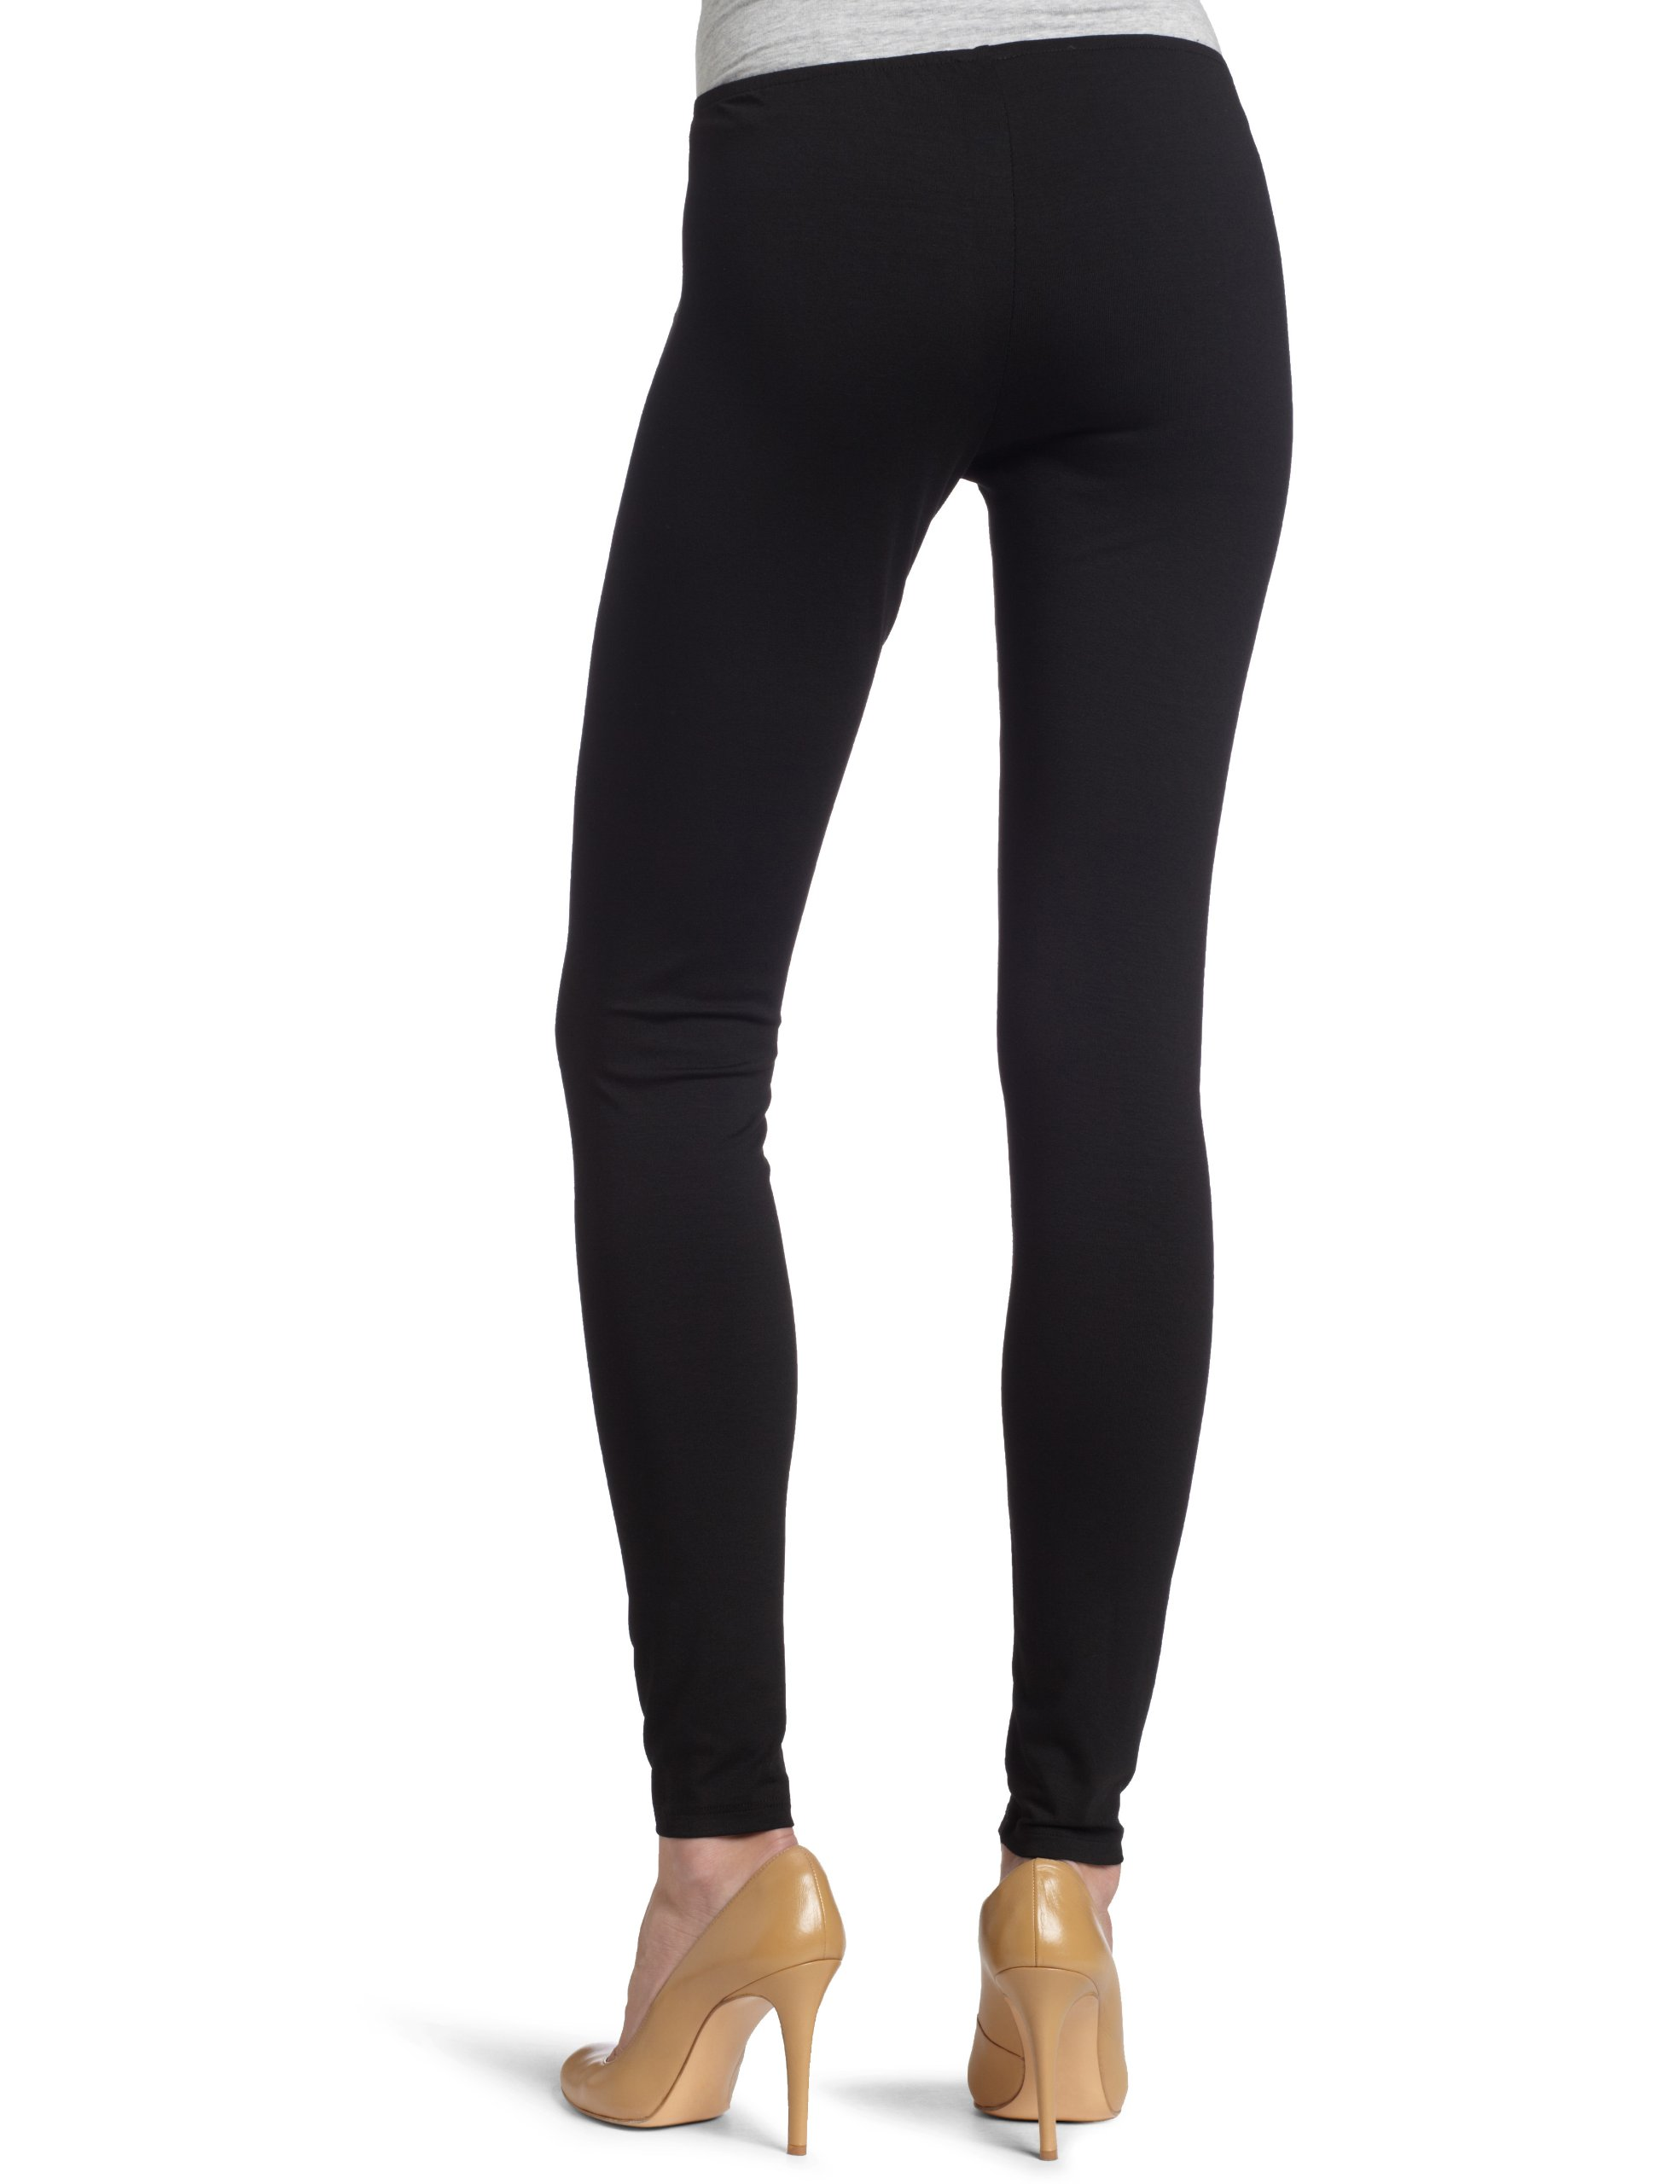 Only Hearts Women's So Fine Legging - 20078,Black,X-Small by Only Hearts (Image #2)